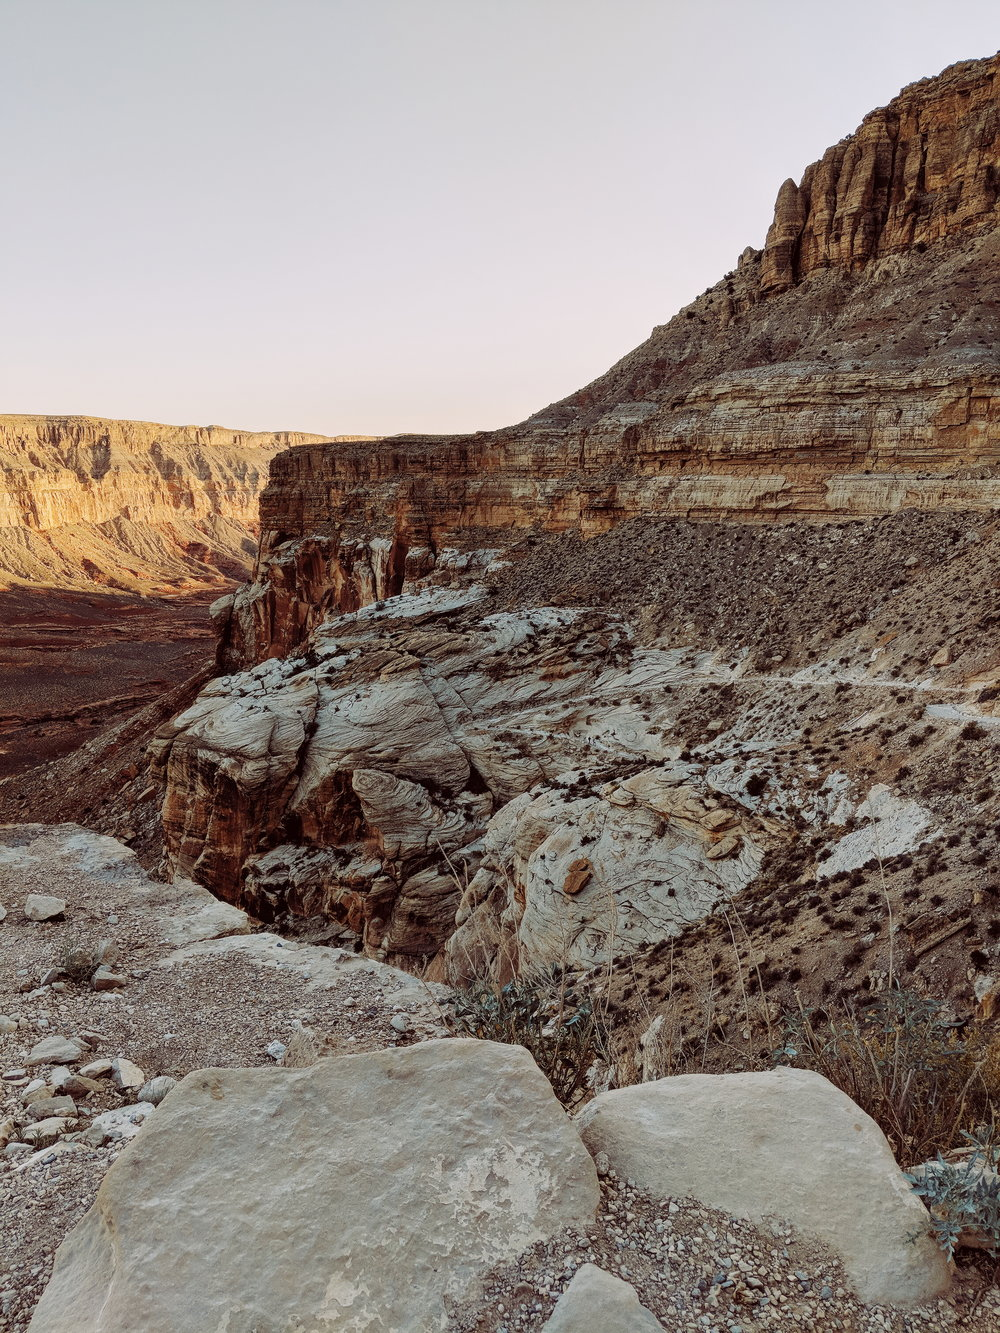 Can you spot the switchbacks on the opposing canyon wall?